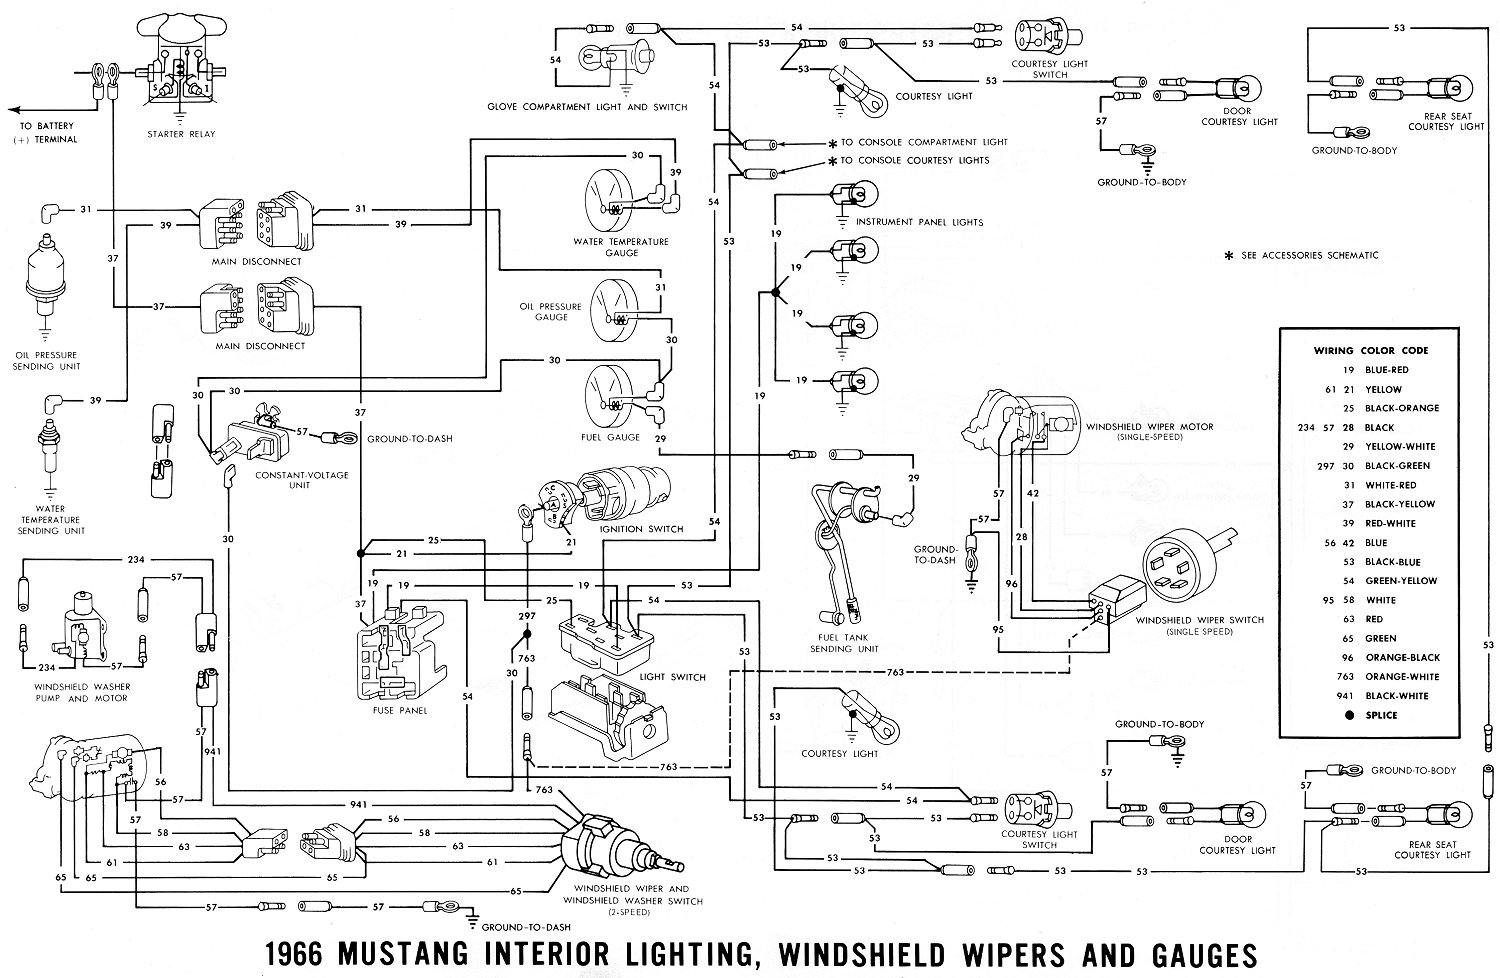 1966 mustang fuse diagram wiring schematic diagram rh asparklingjourney com  Ford Excursion Stereo Wiring Harness 2002 Ford Mustang Wiring Harness